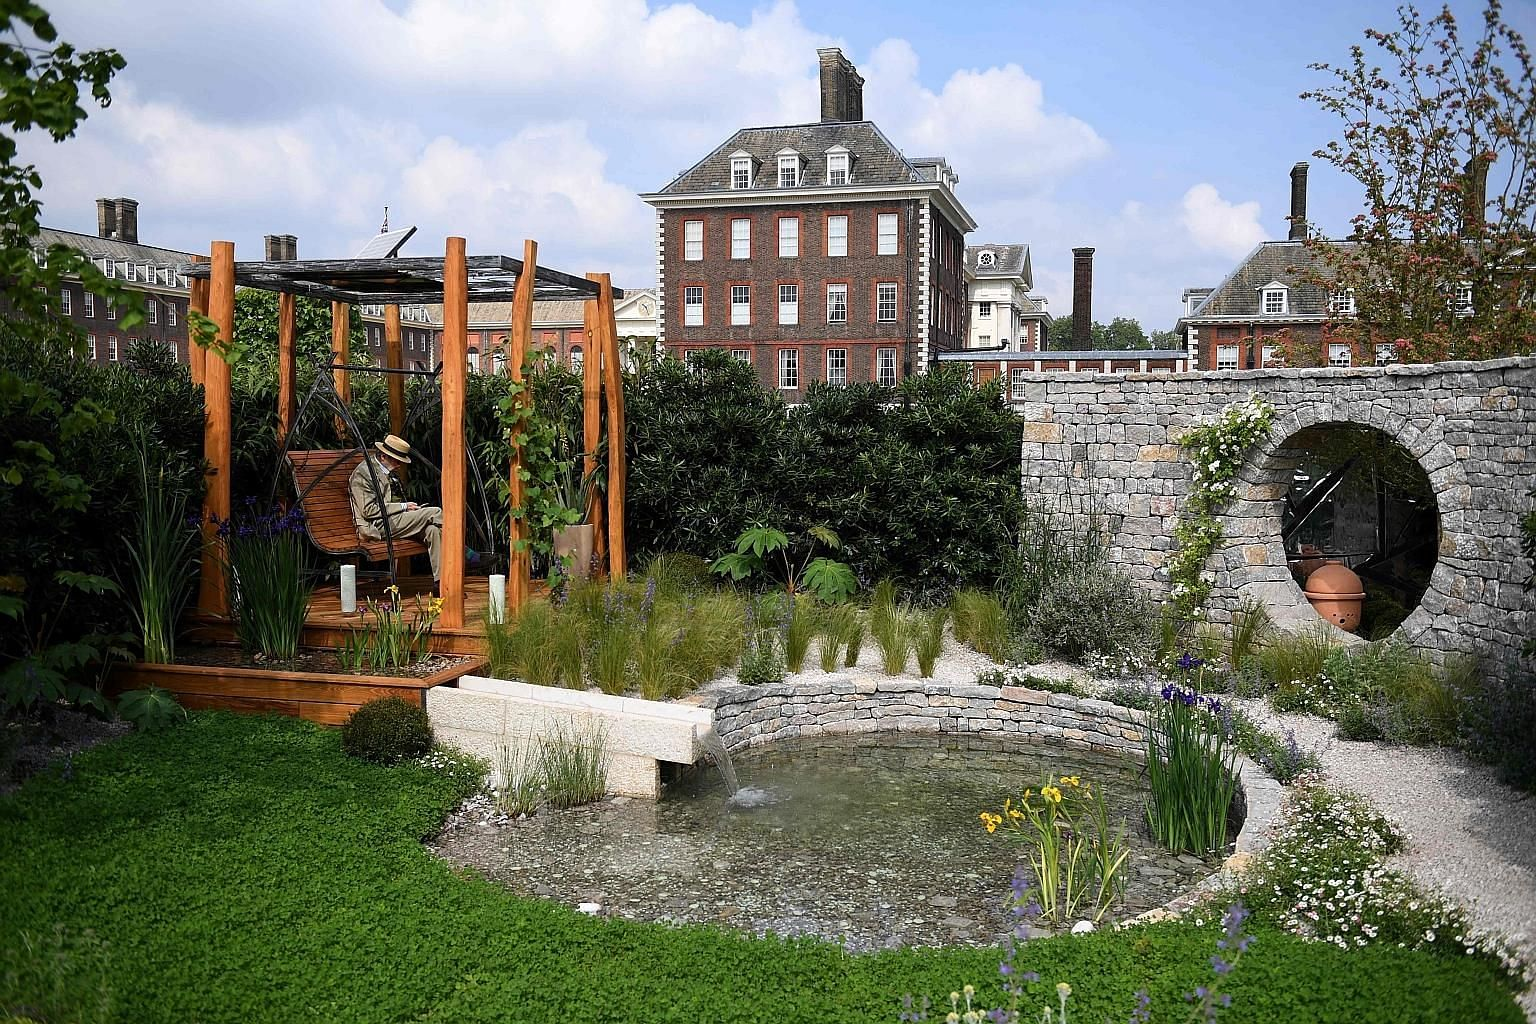 Potted bonsai are among the different plants on display. The Harmonious Garden of Life (above), designed by Laurelie de la Salle, aims to provide a calming experience for visitors. A floral headdress on show. Prince George and Princess Charlotte (bot